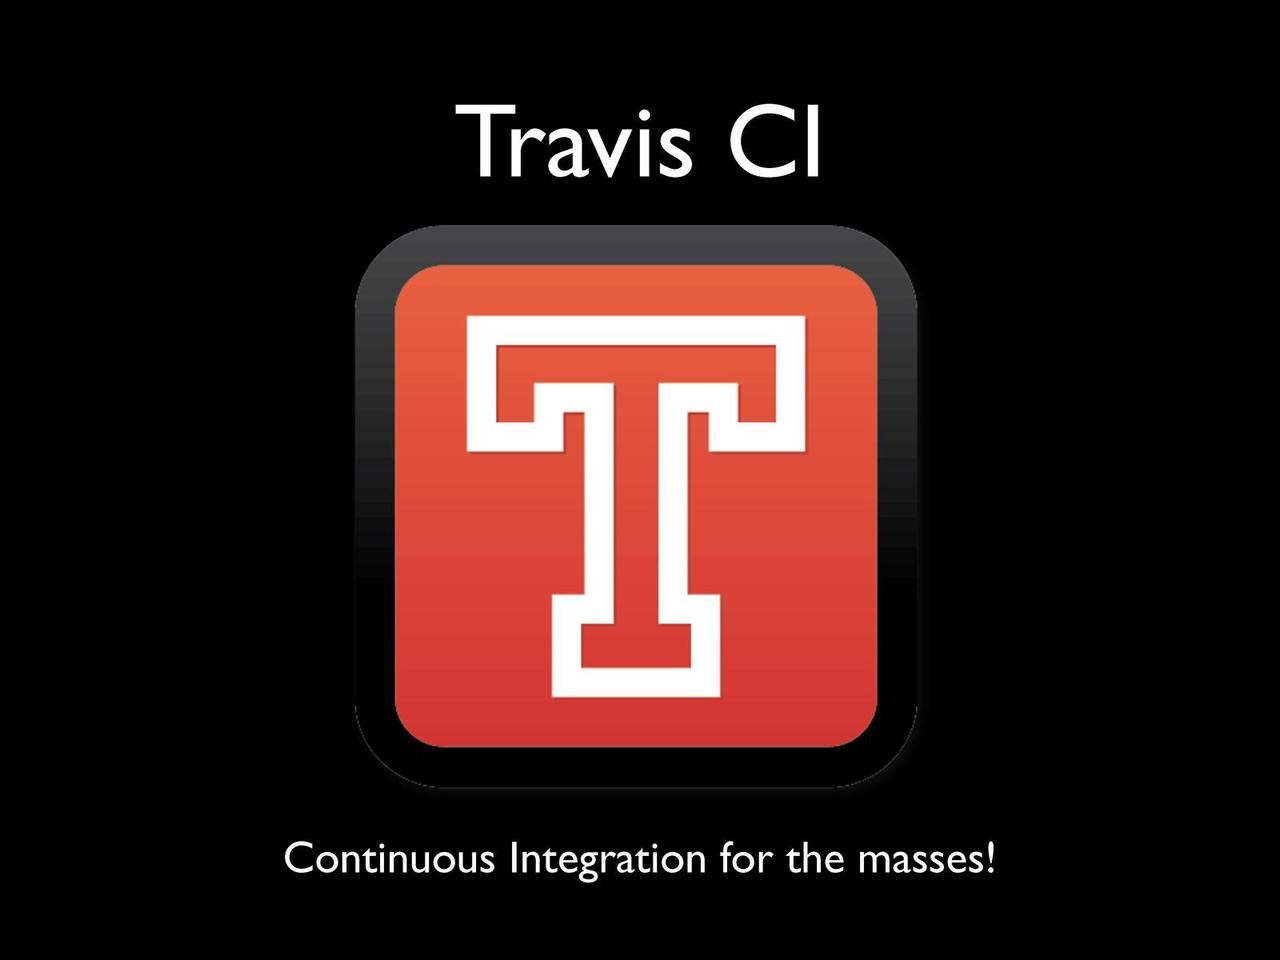 Travis CI - Continuous Integration for the masses!